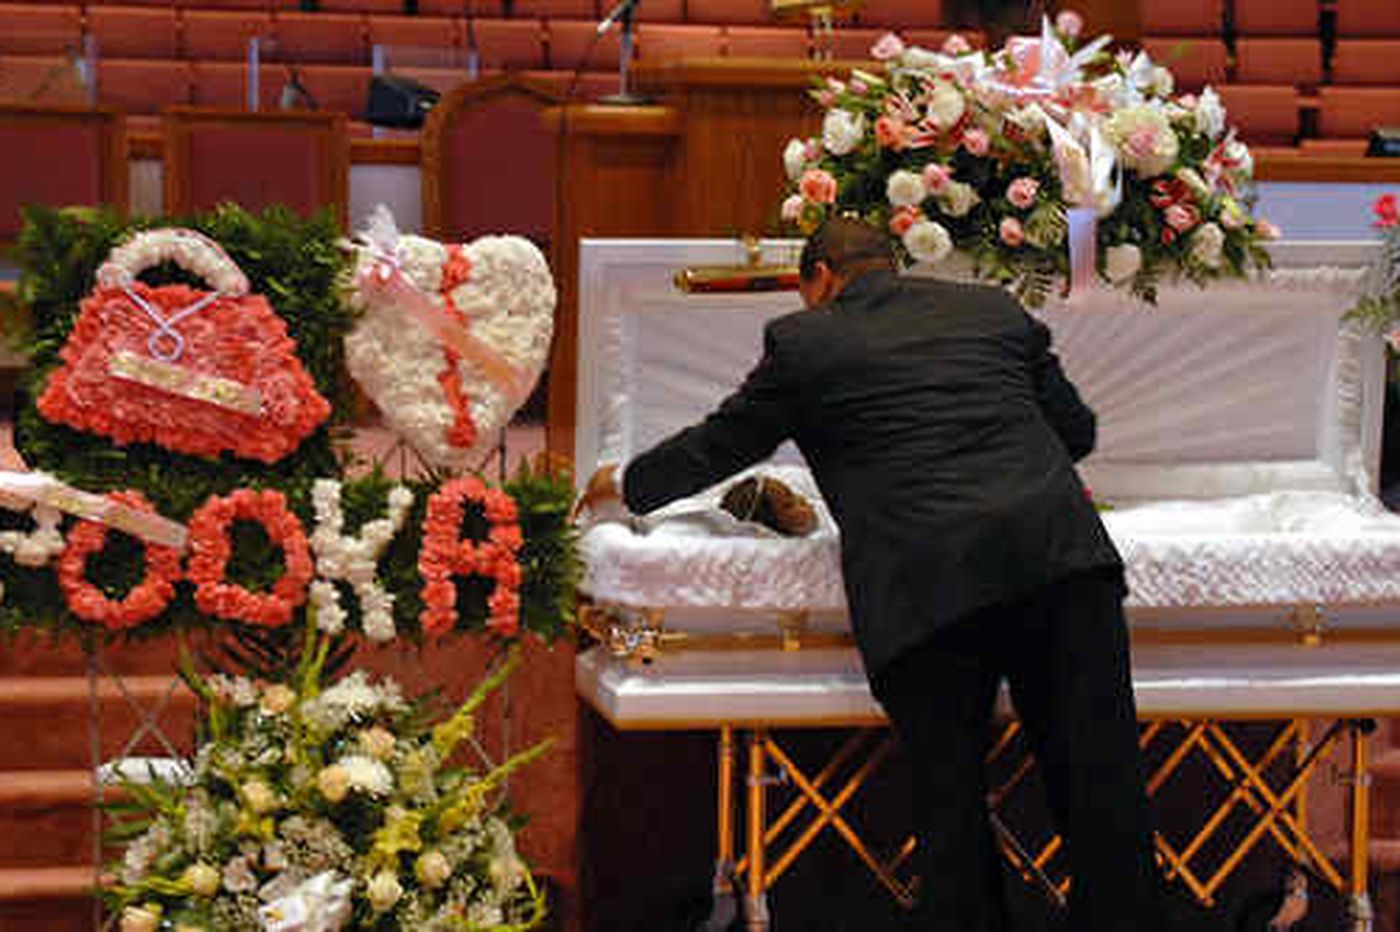 'Pooka' remembered: 'Kind-hearted' Aaliyah is mourned